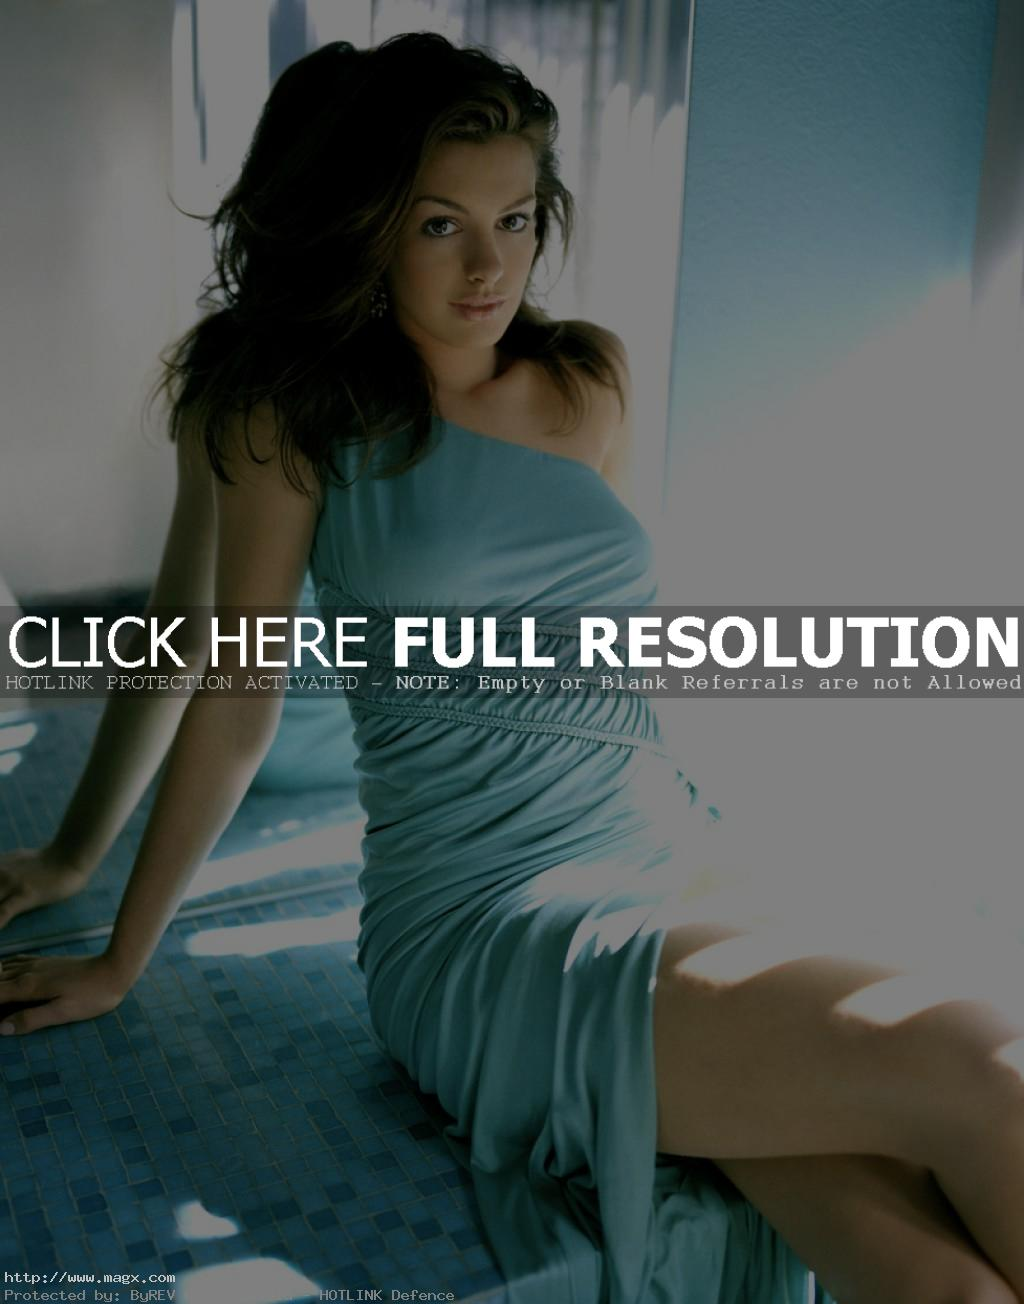 anne hathaway11 Anne Hathaway Biography and Hot Photos